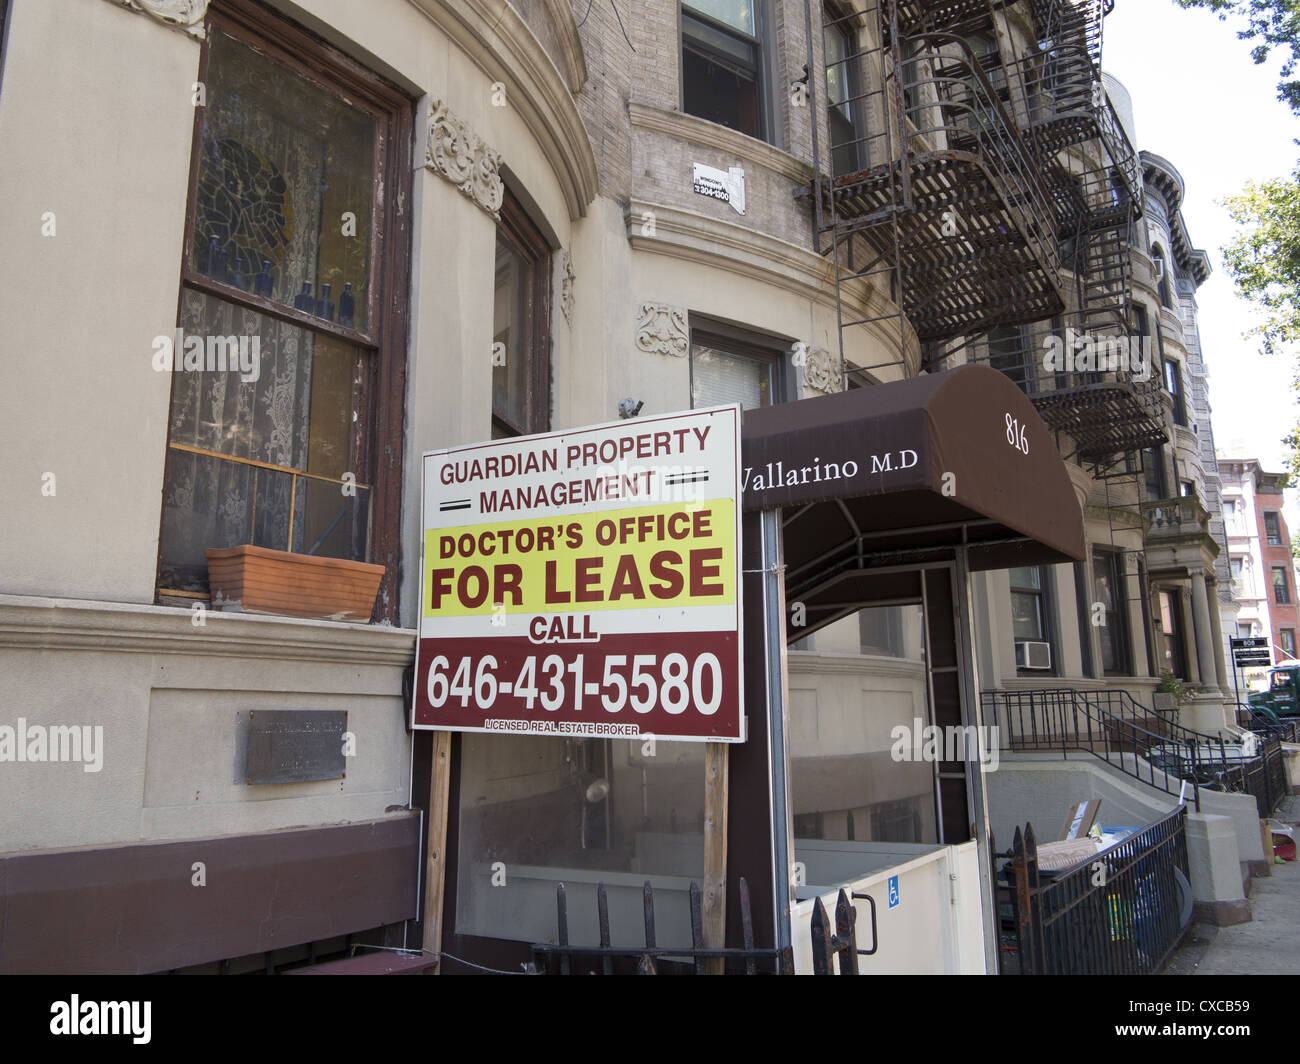 Doctor's office for lease in Park Slope Brooklyn; NY; a neighborhood with a hospital nearby. - Stock Image